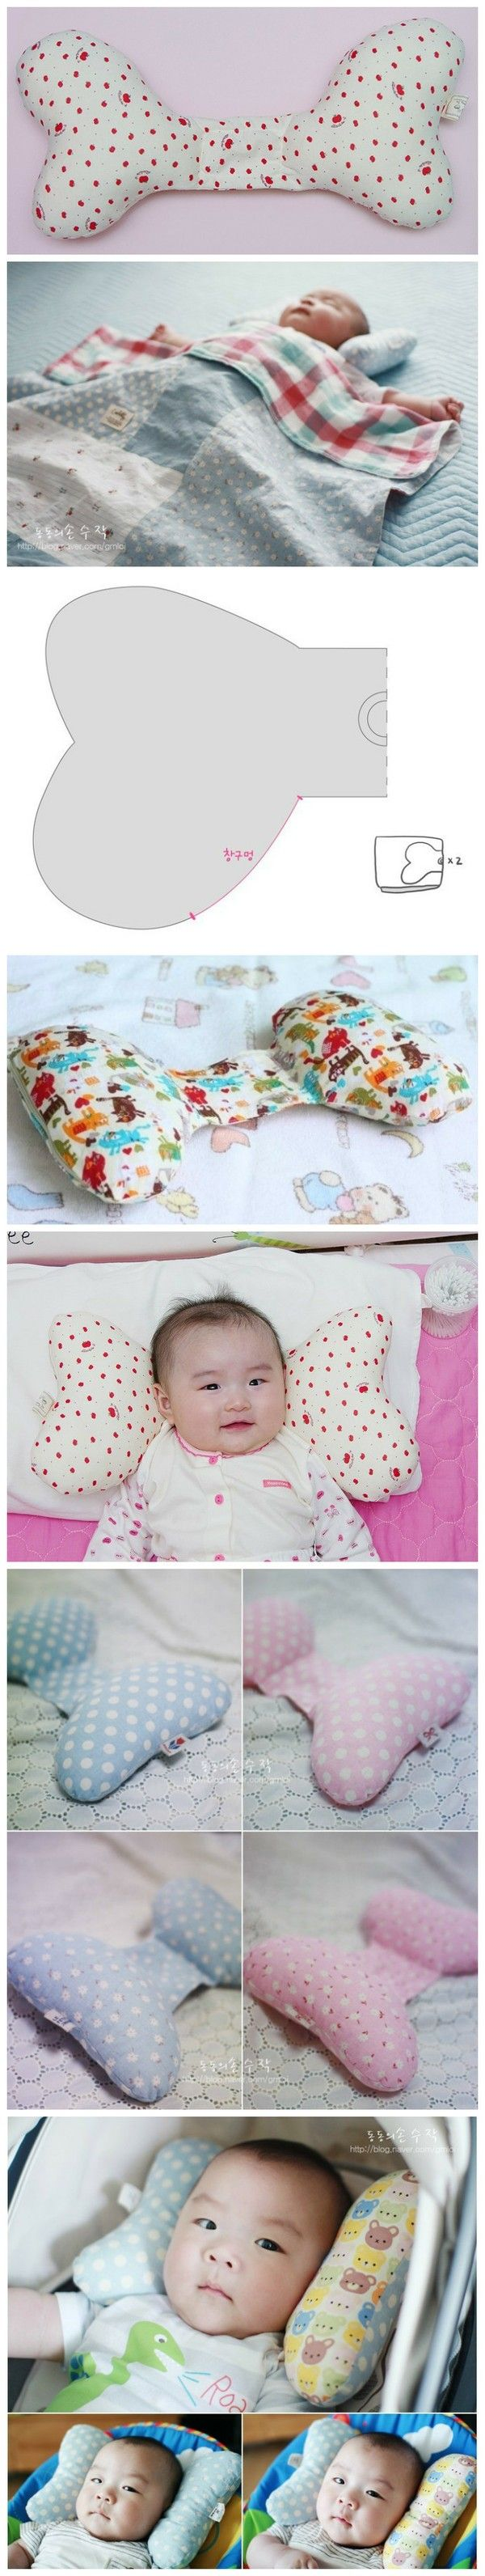 DIY Pillow for baby pattern